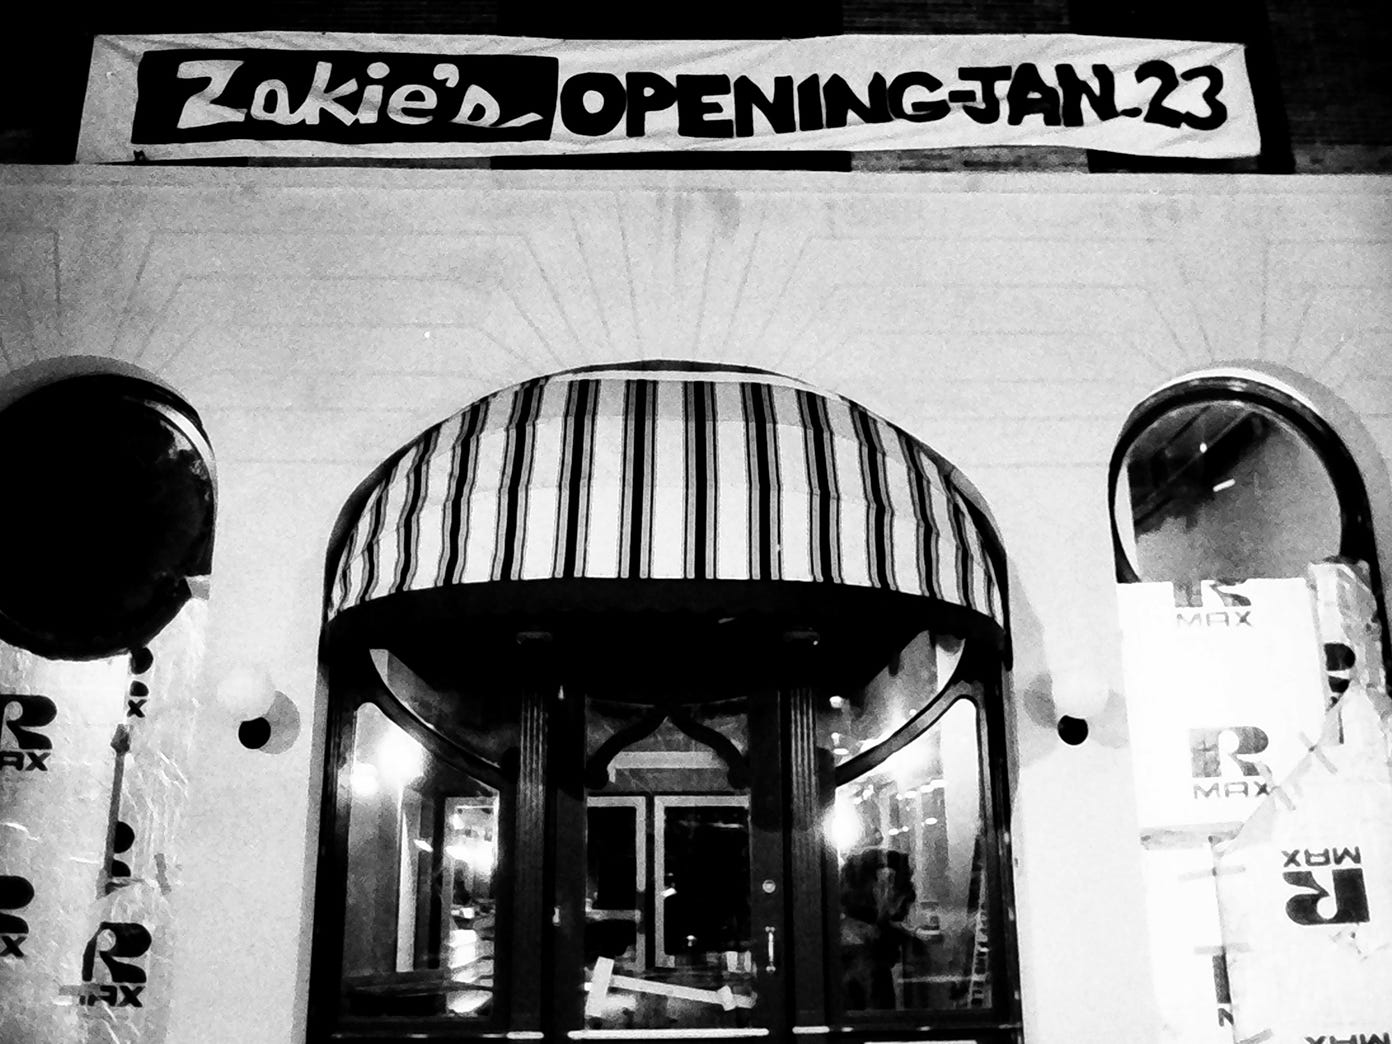 Zakie's night club at 25 W. Market St. opened on Jan. 23, 1985. The project was an early redevelopment project and today is the home of Fig and Barrel.